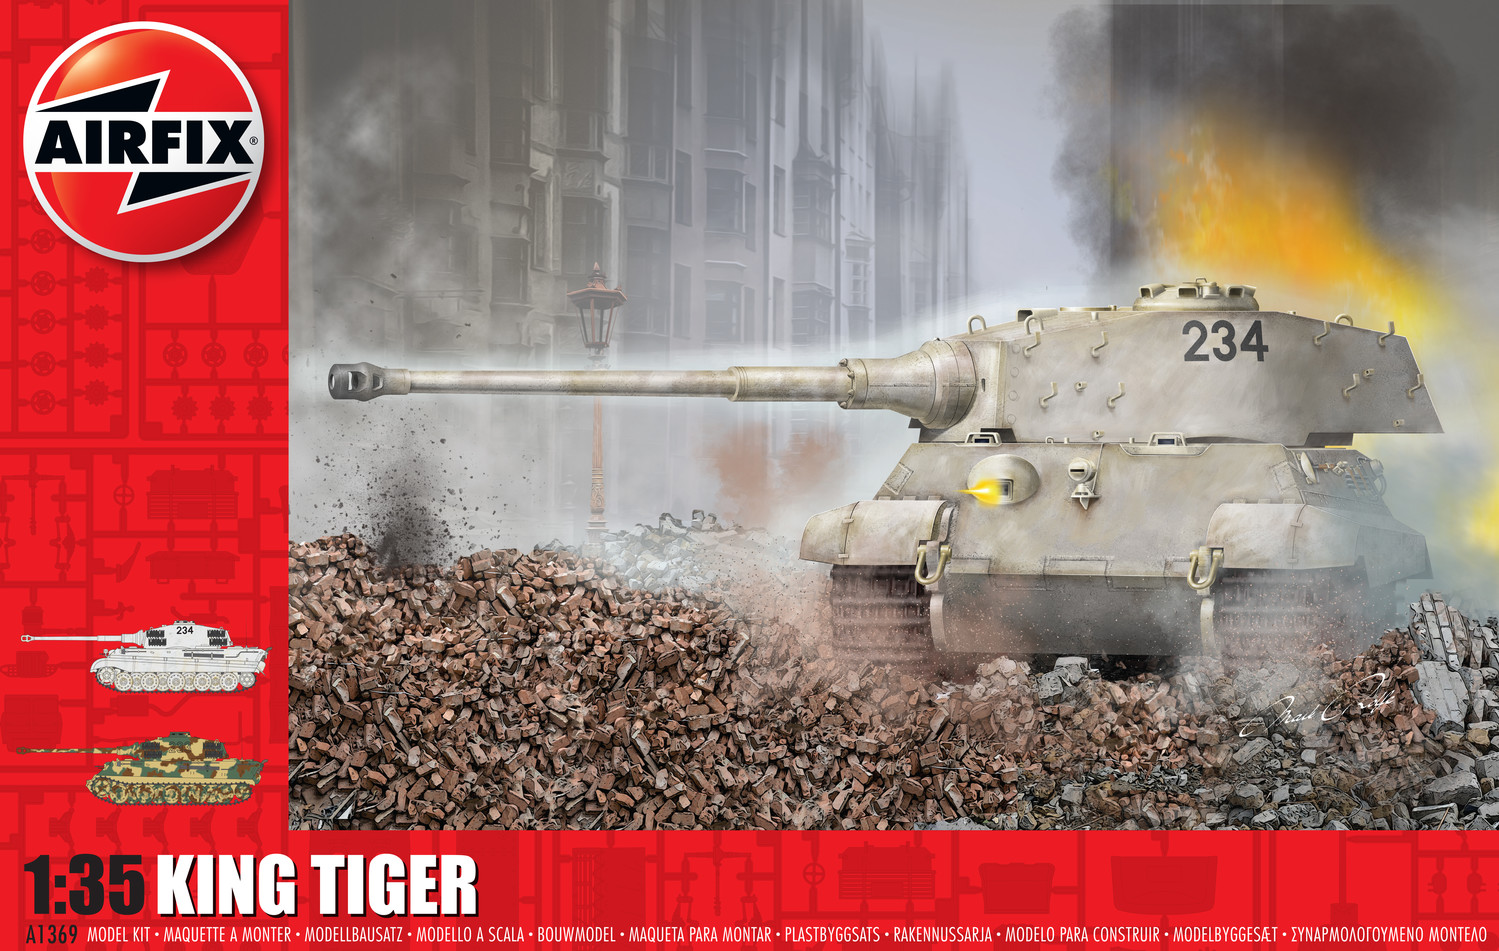 Airfix - tank A1369 - King Tiger 1:35